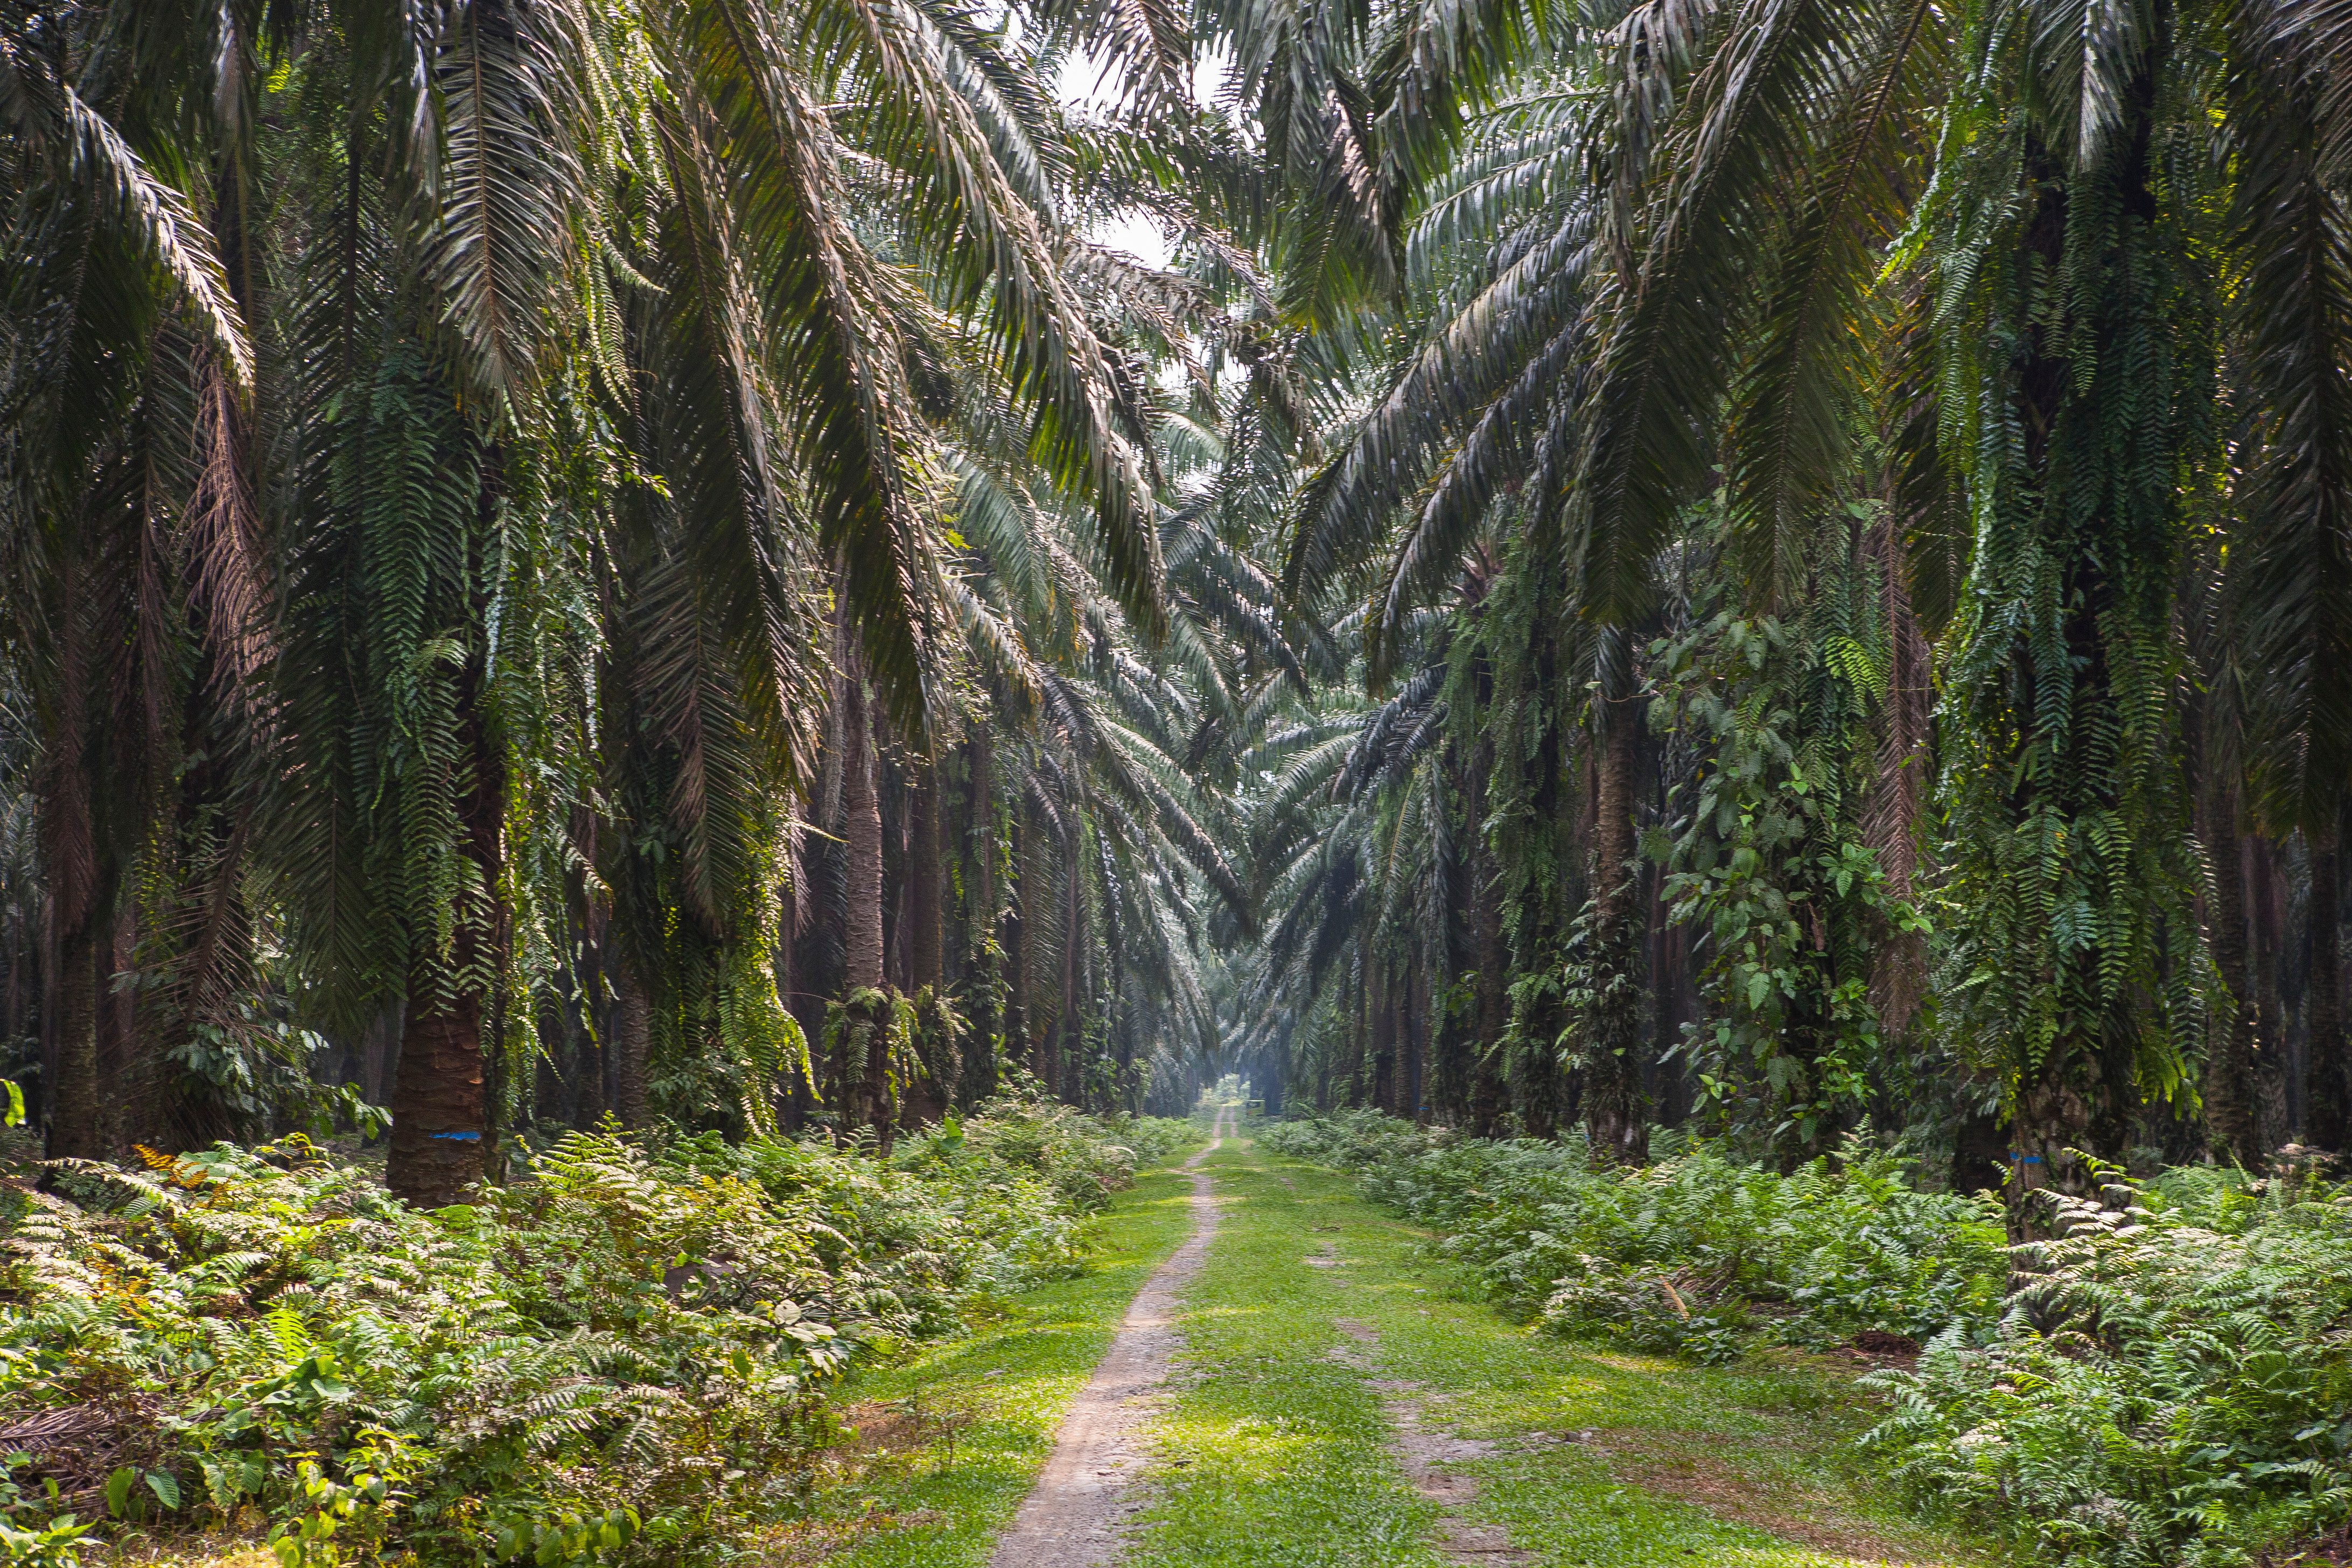 Path in an oil palm plantation, near Bukit Lawang, Sumatra, Indonesia